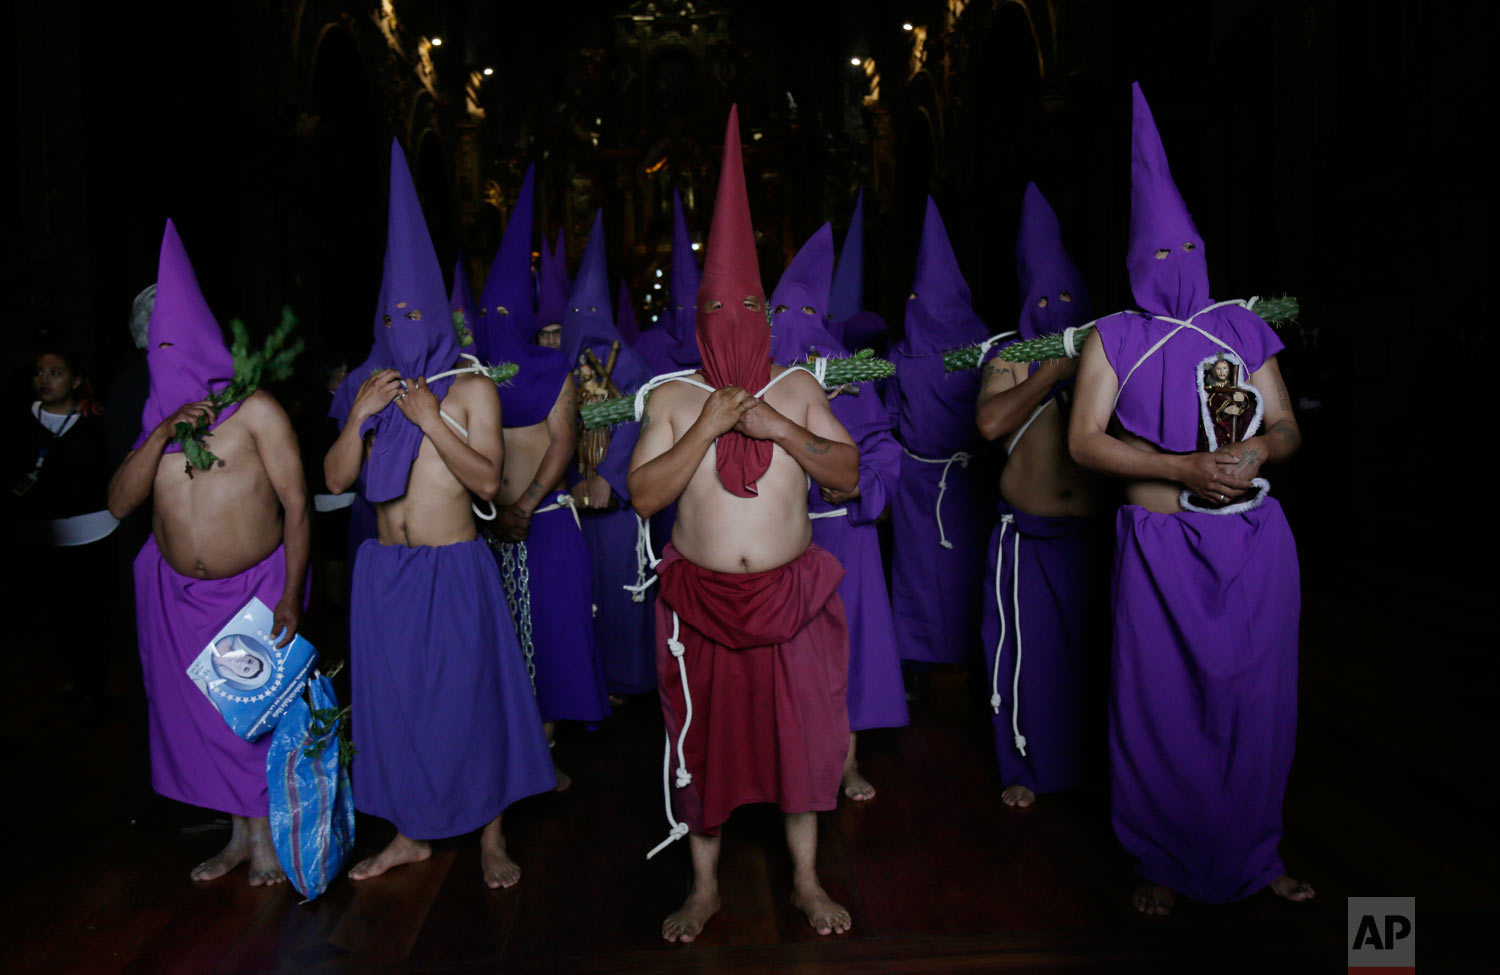 Hooded and barefoot penitents leave San Francisco church during the Jesus del Gran Poder procession on Good Friday in Quito, Ecuador, April 19, 2019. (AP Photo/Dolores Ochoa)